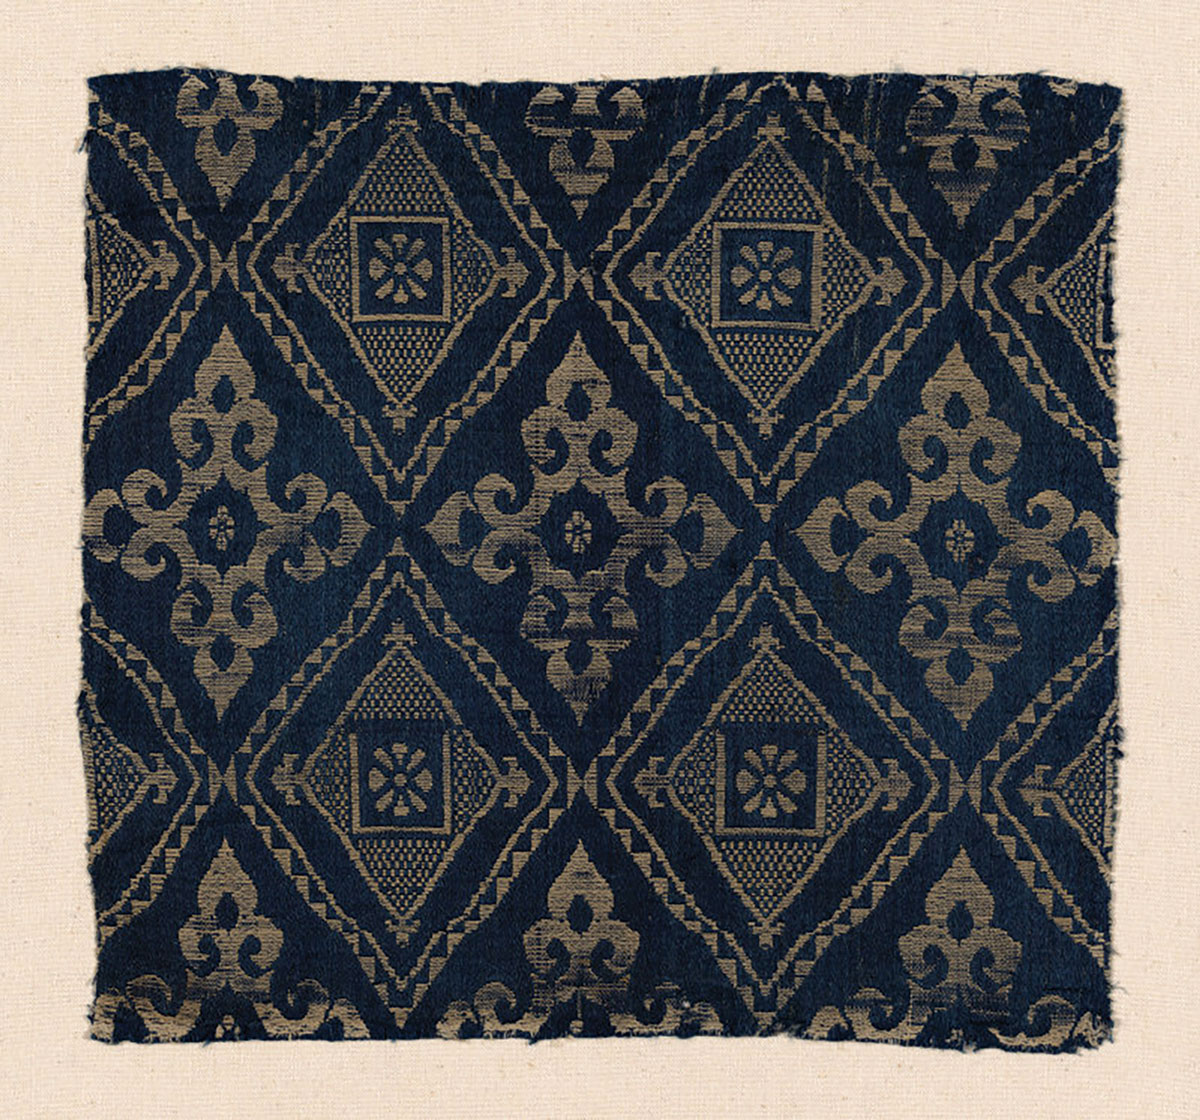 A 14th-century textile fragment by a Mamluk maker